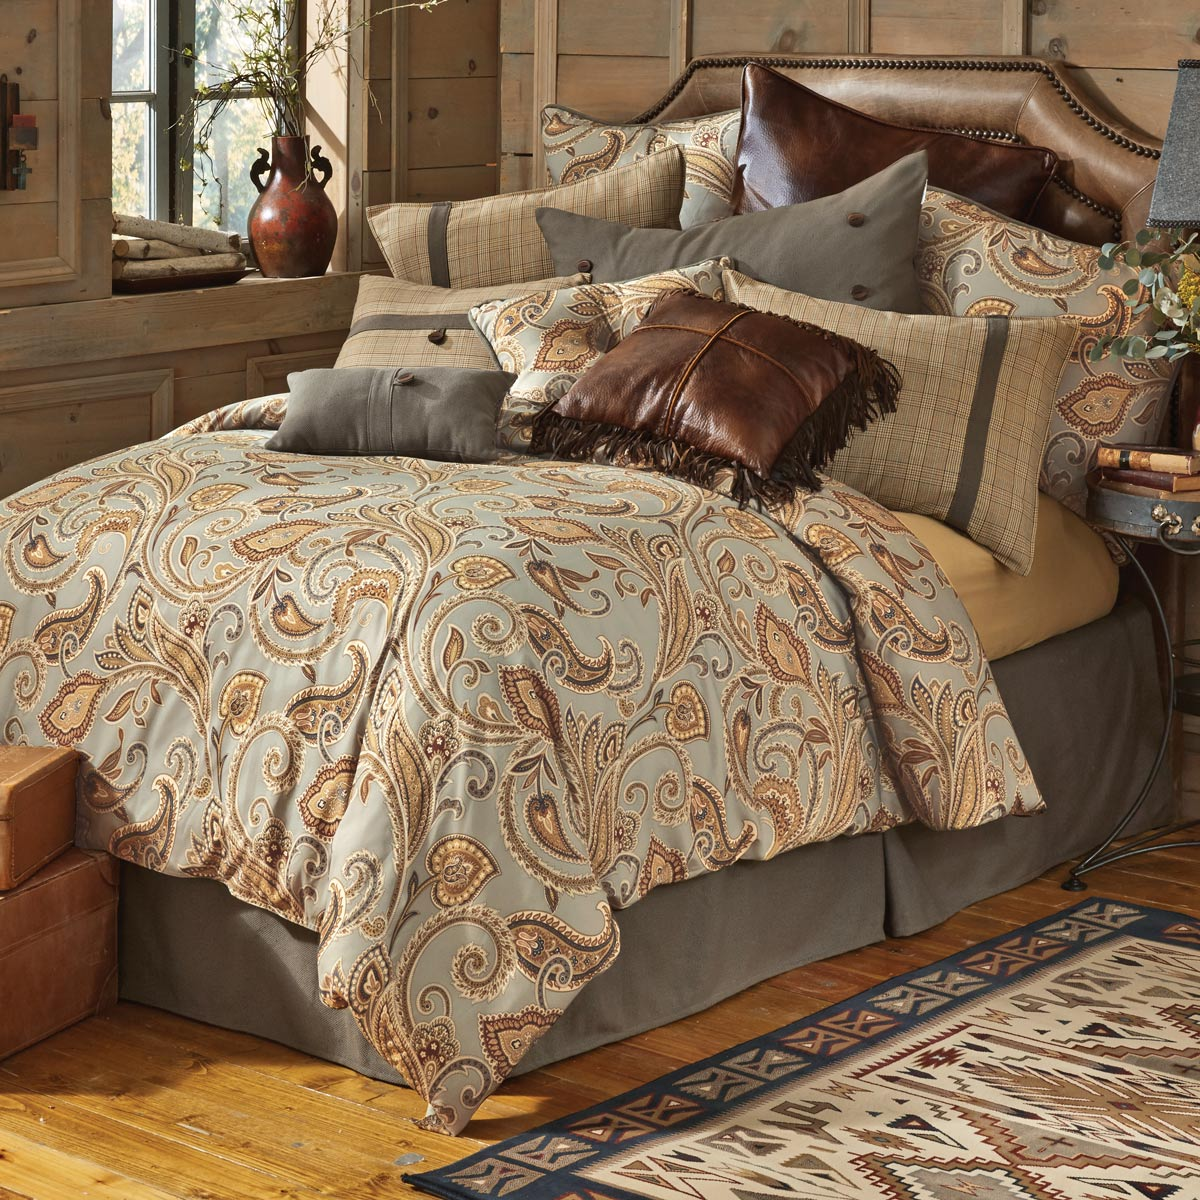 Use Tan Comforter Set